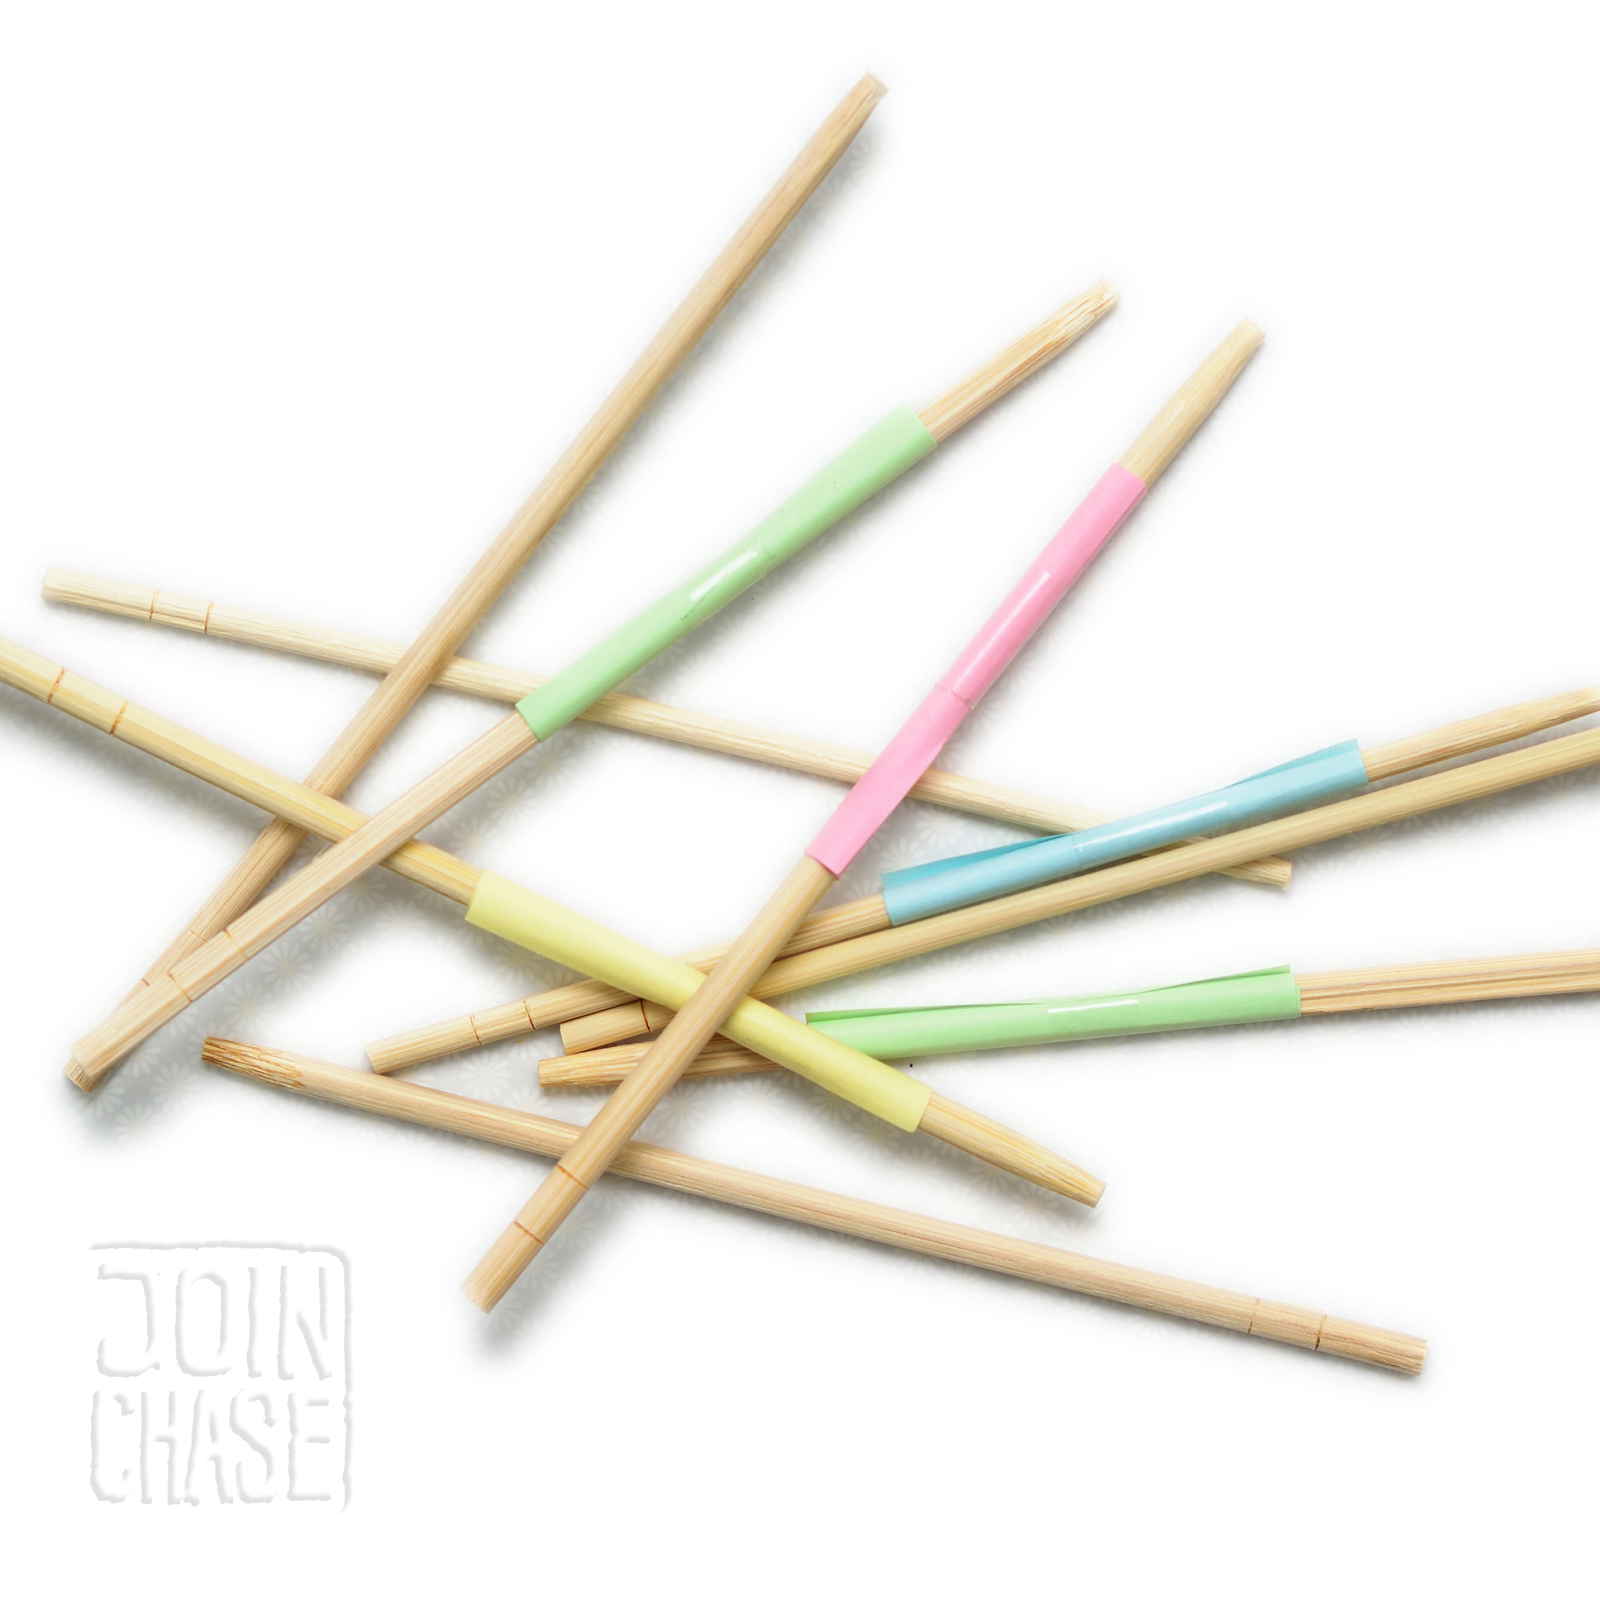 Wooden chopsticks with paper rolled around them used to play Pick-up Sticks in an English lesson.